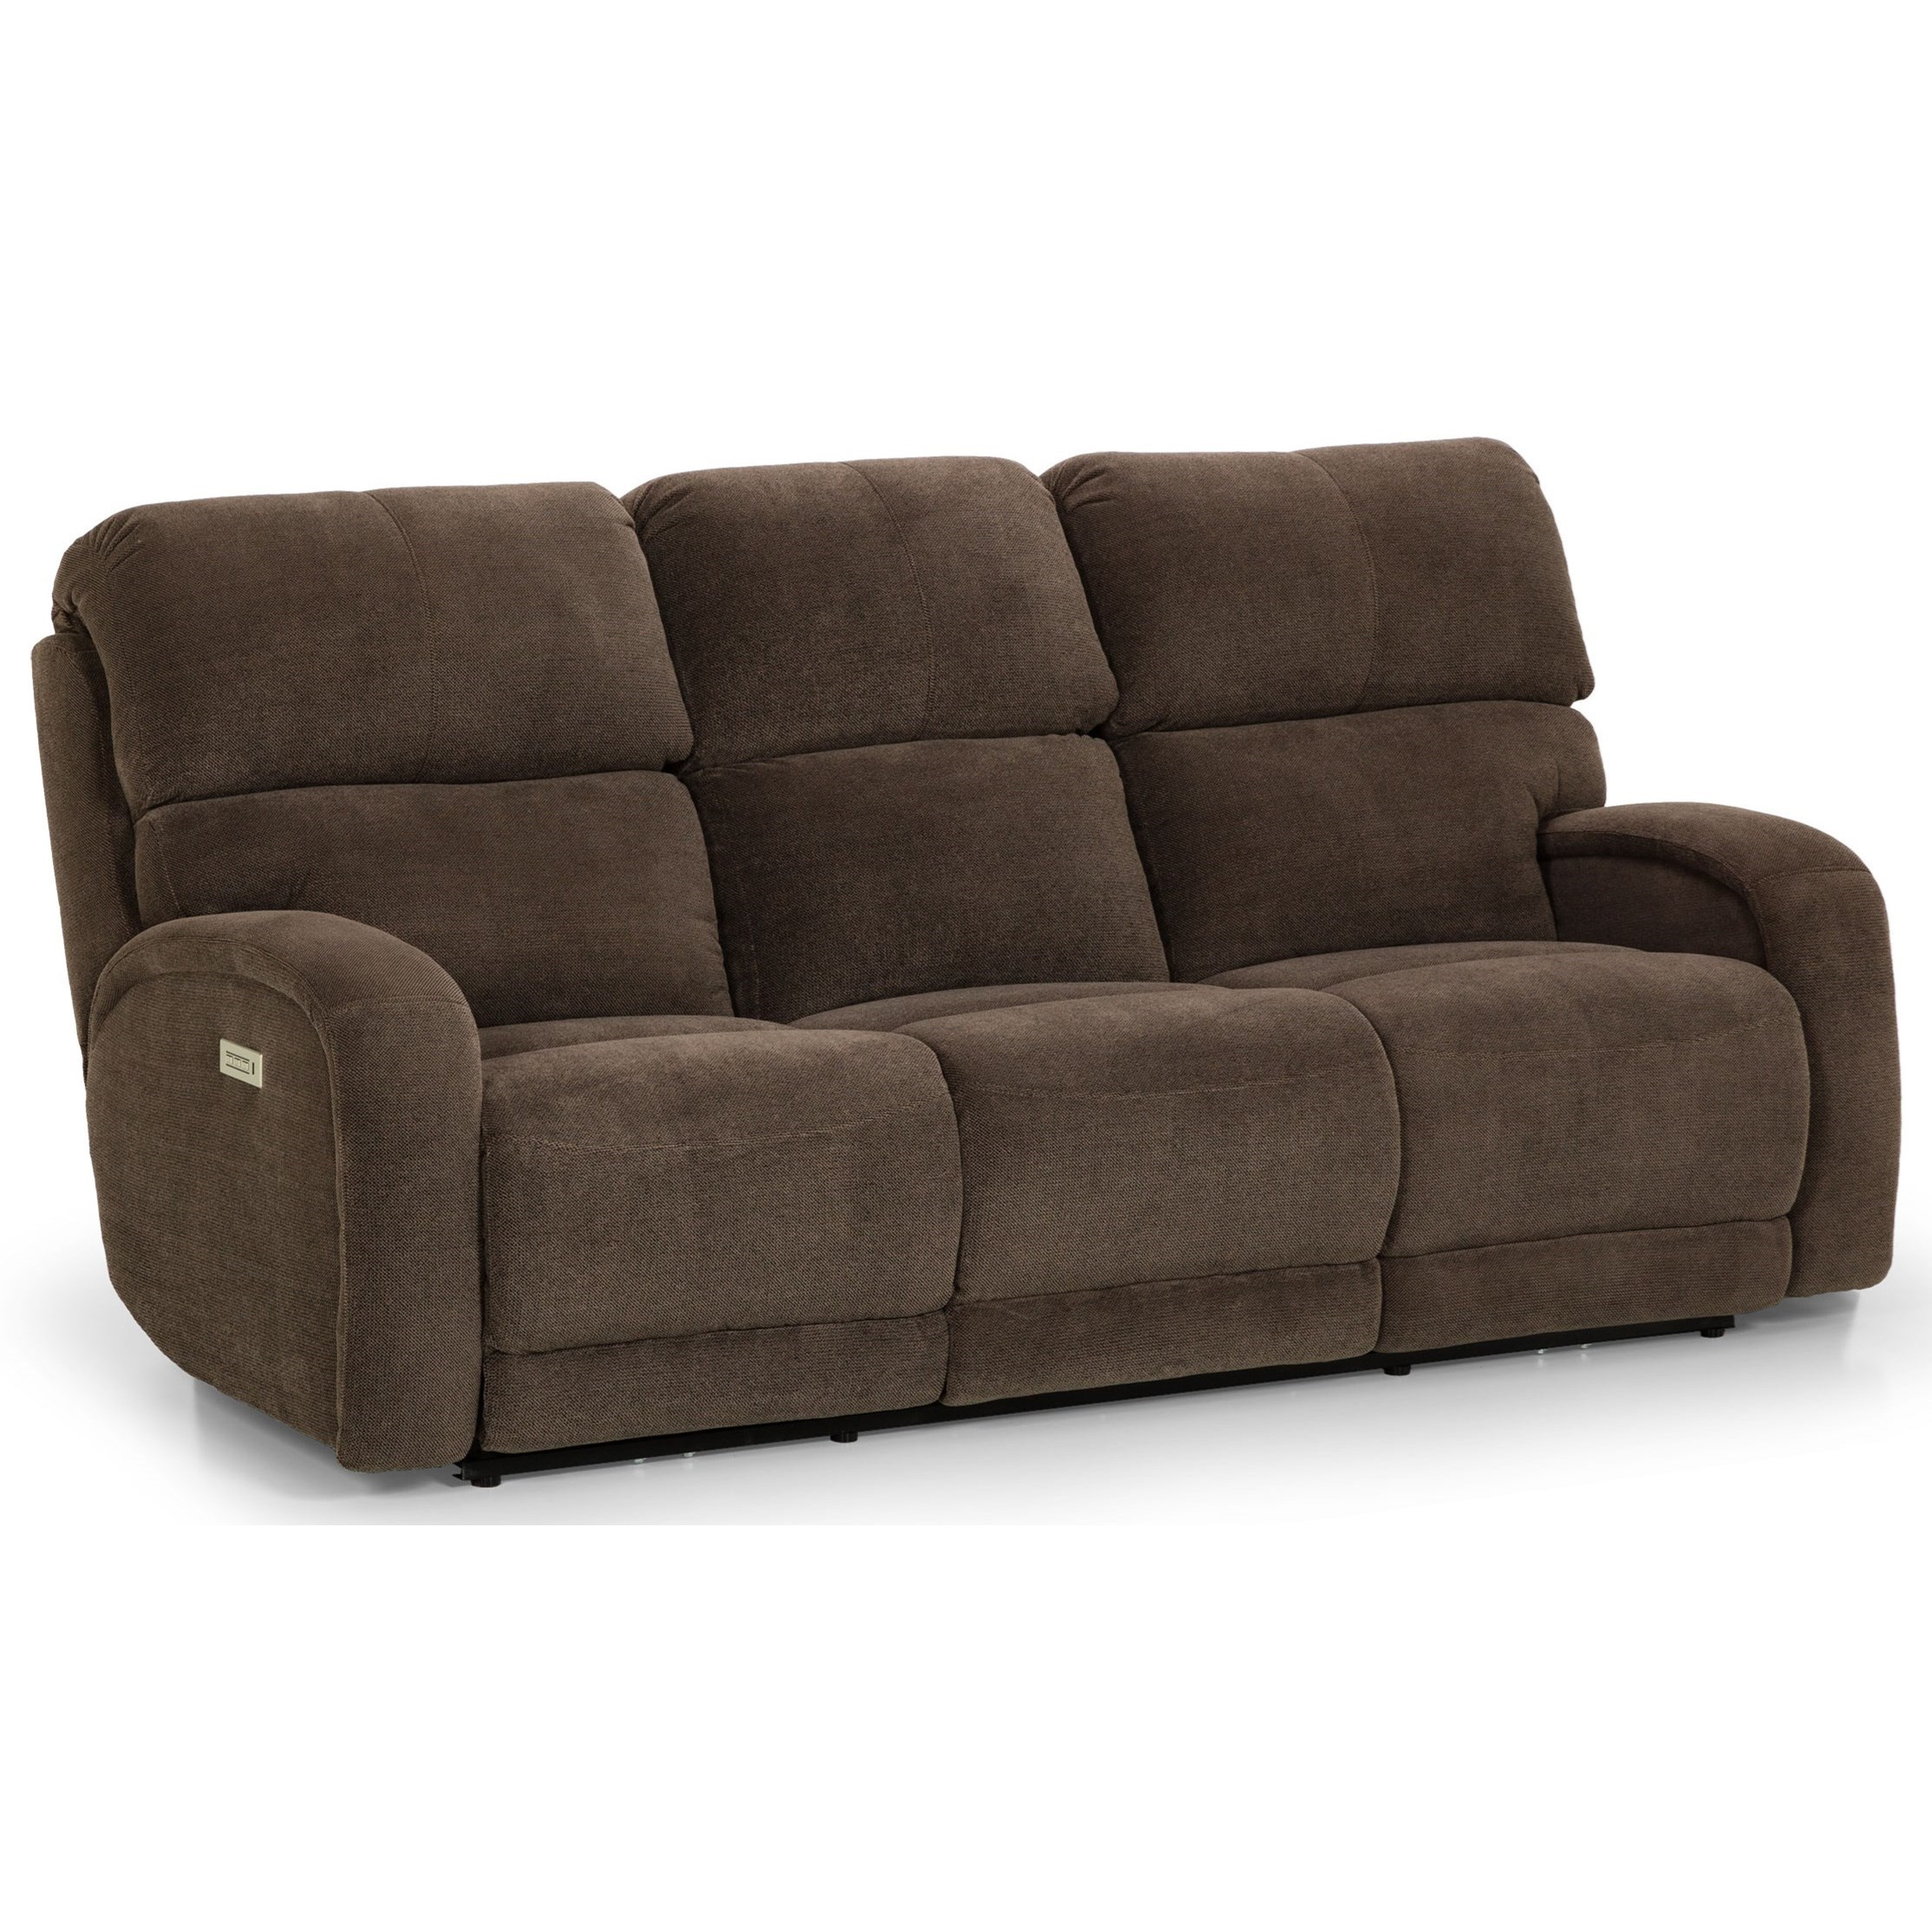 858 Reclining Sofa by Sunset Home at Sadler's Home Furnishings